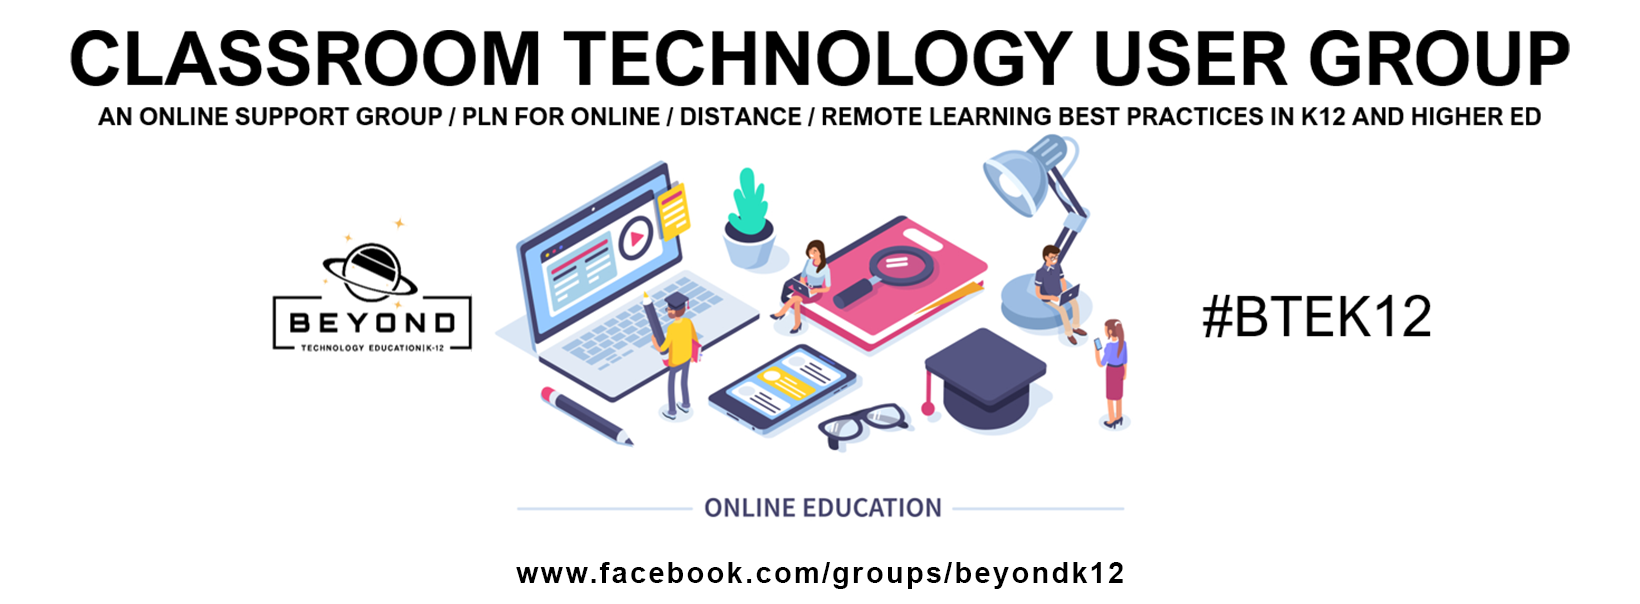 Classroom Tech User Group Banner ad size